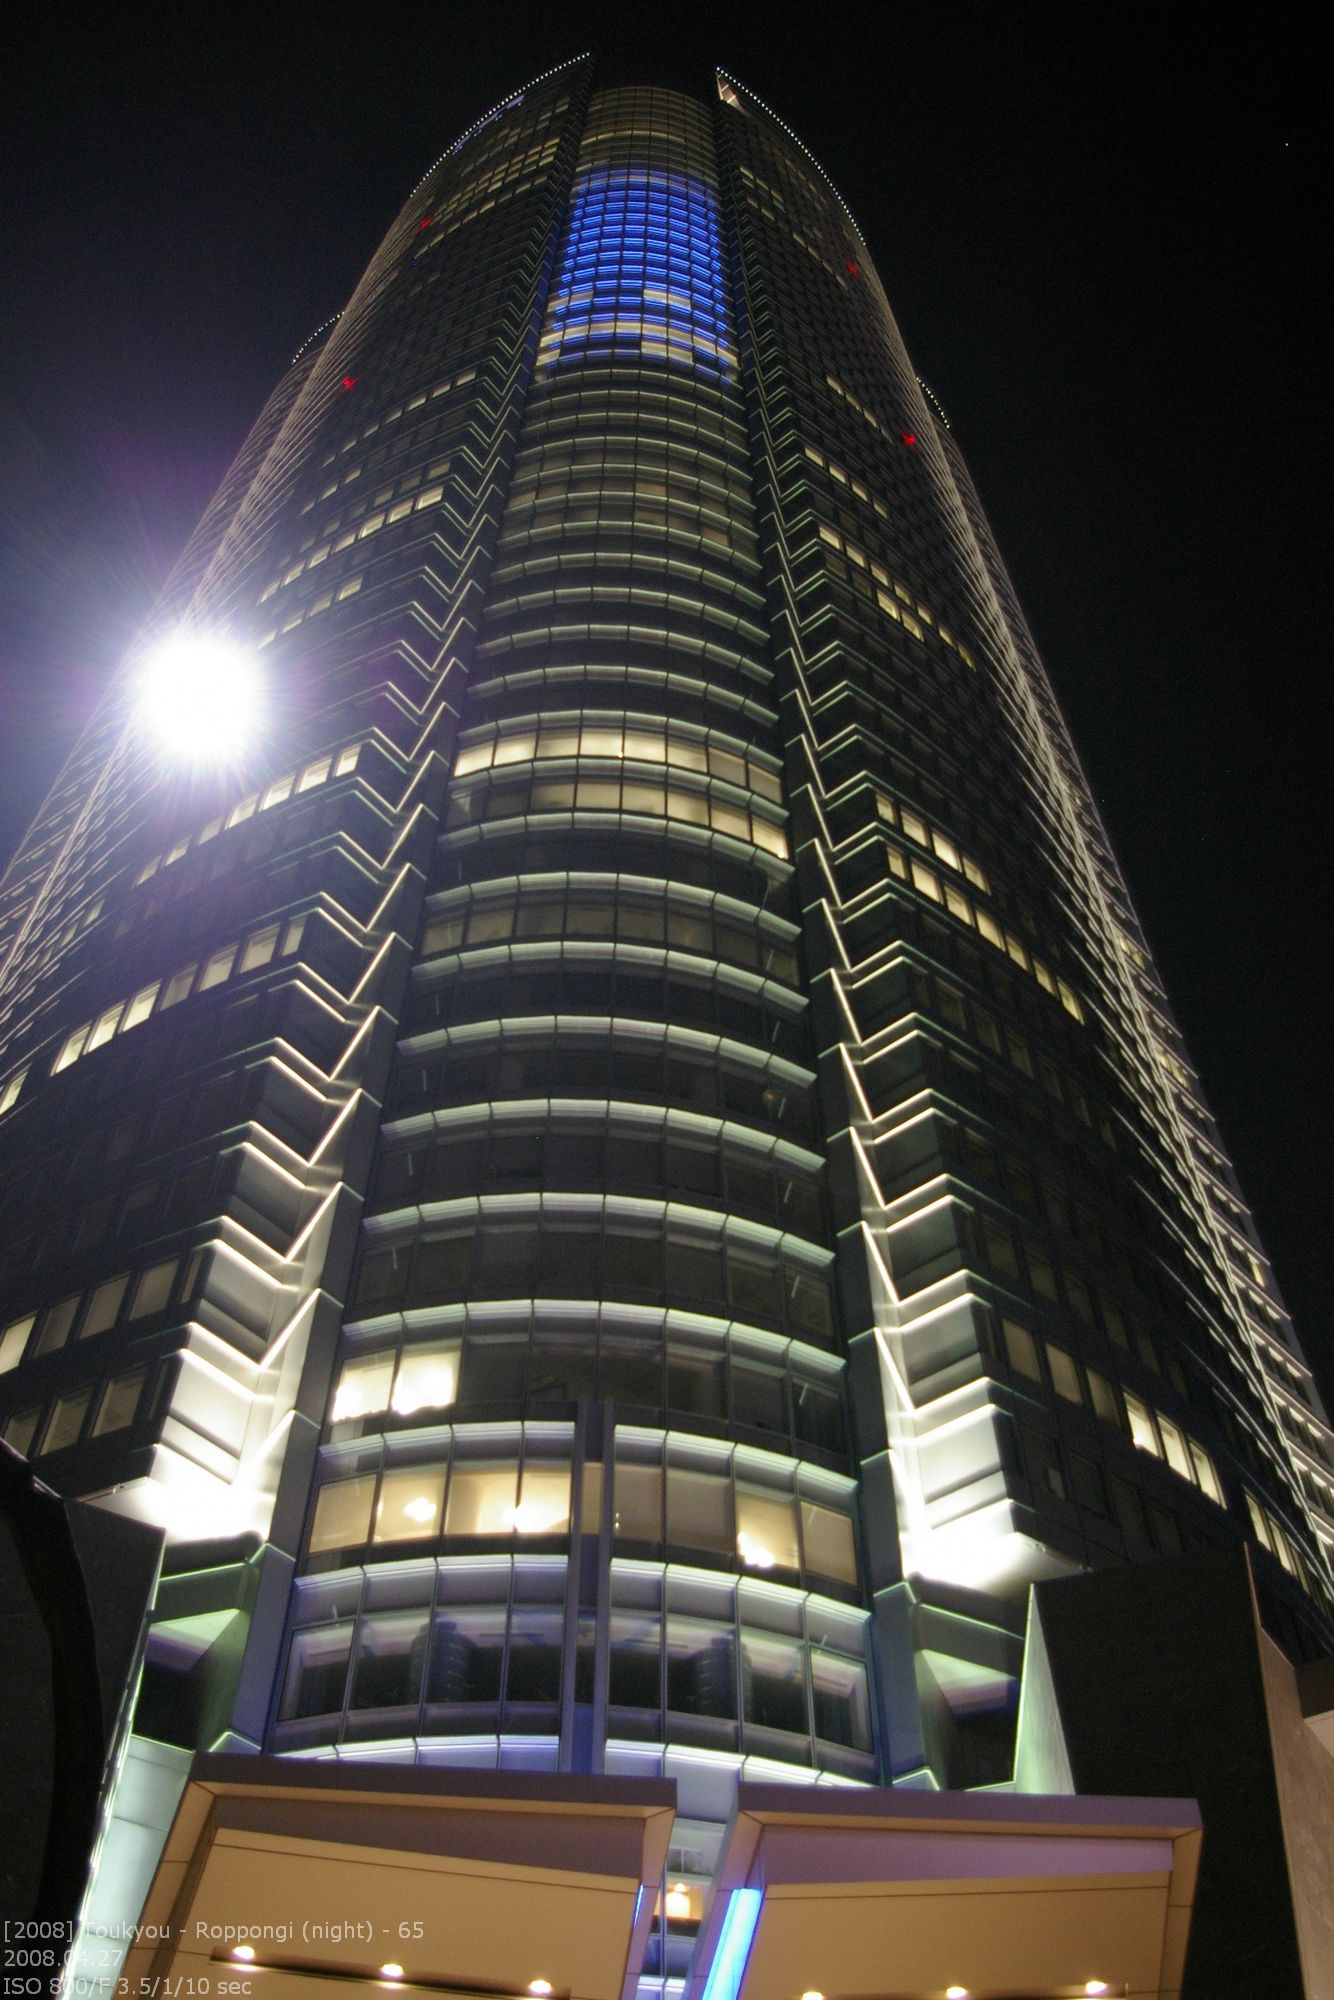 Mori Tower, Roppongi Hill